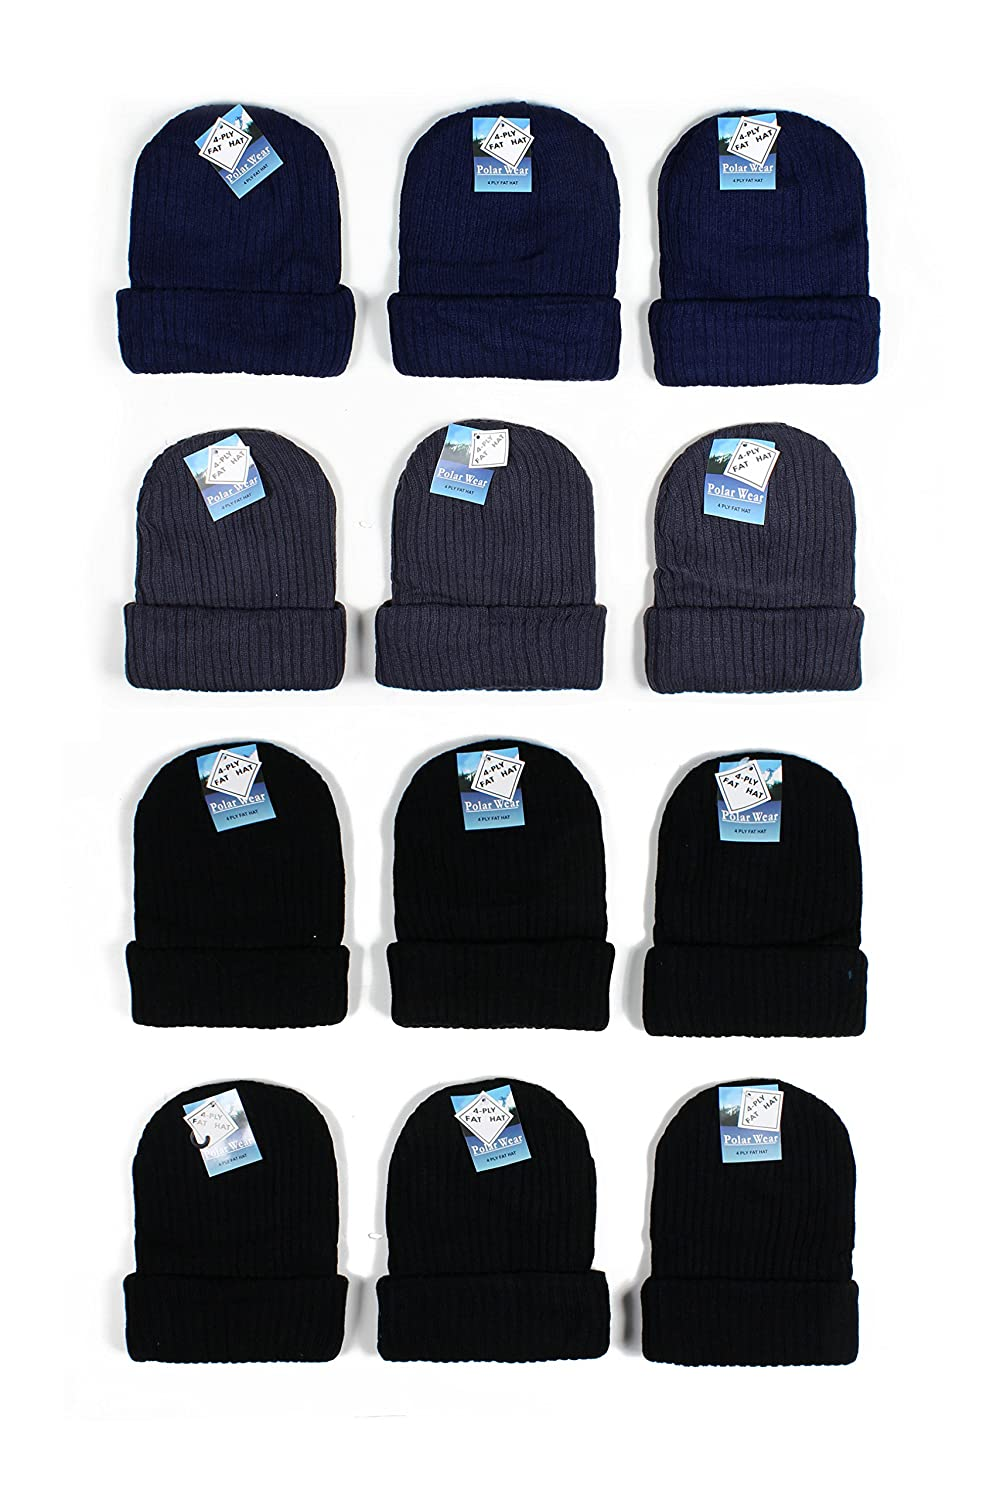 See More Colors Designs Polar Wear Kids Boys 12Pack Cuffed Knit Winter Beanie Hats One Size